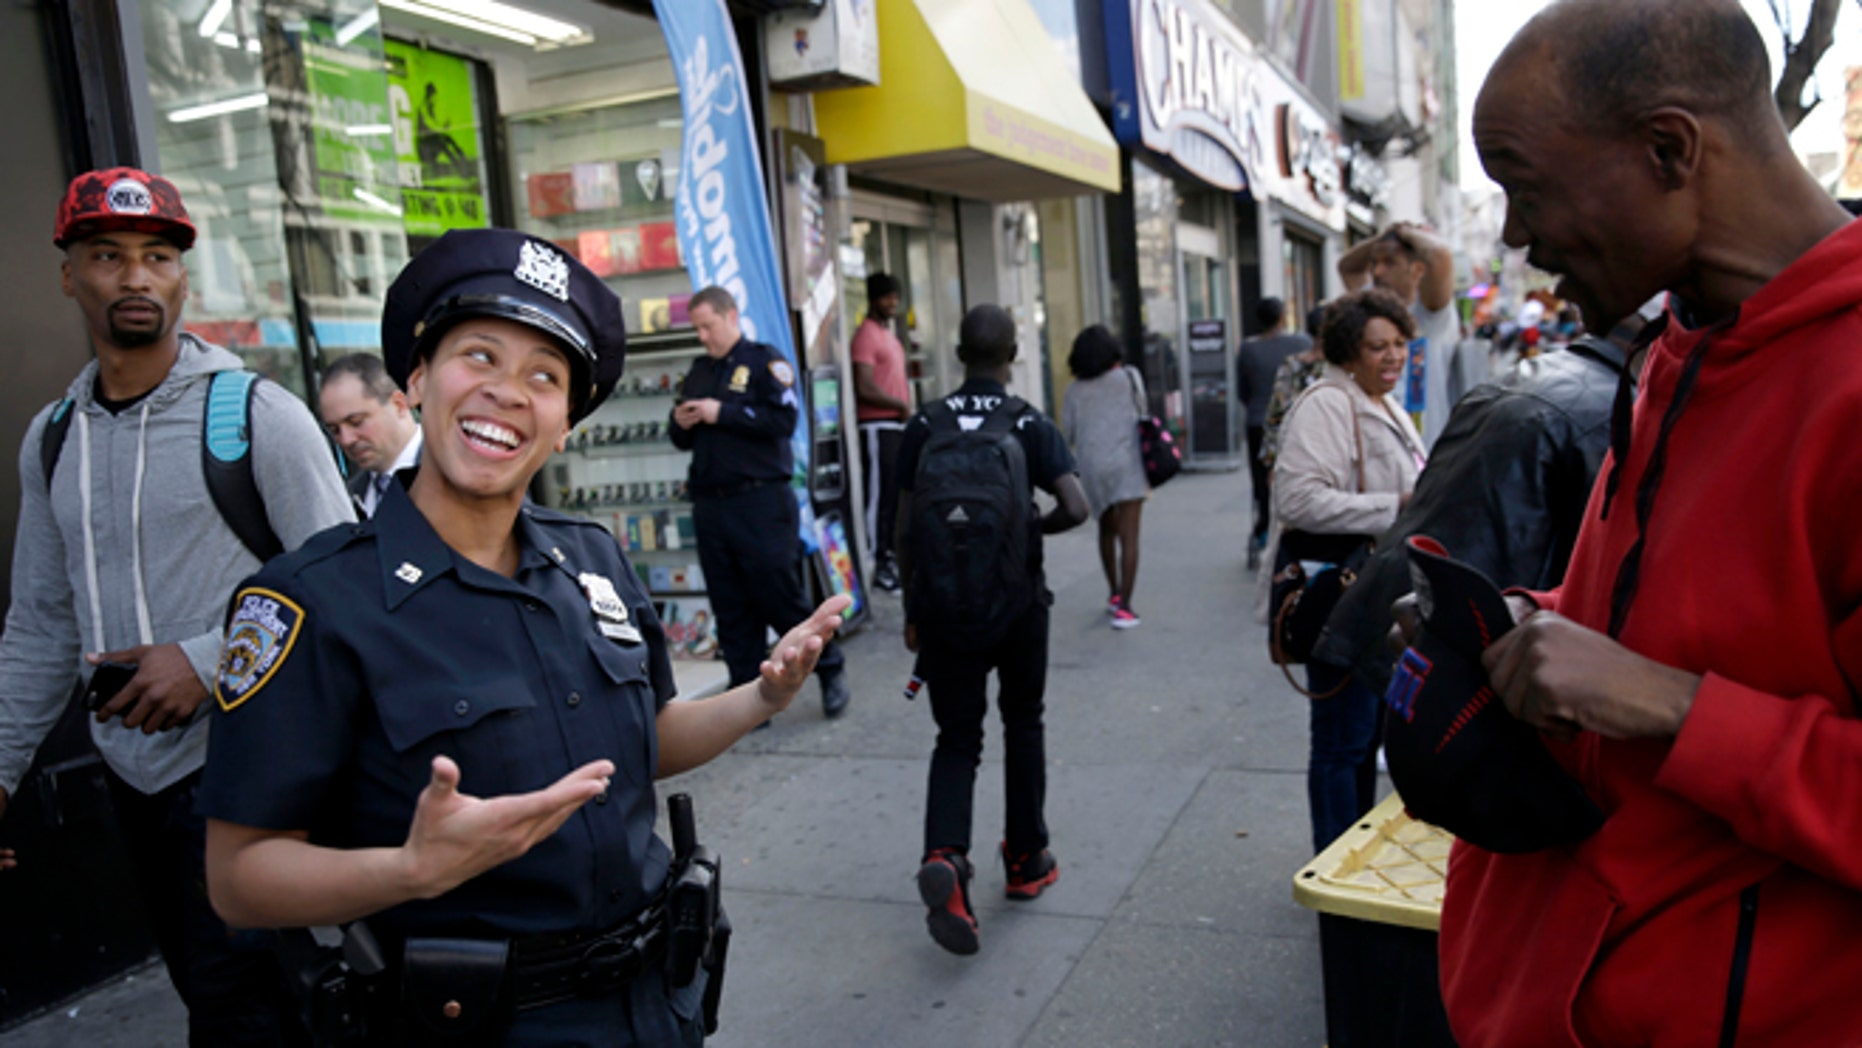 Police officer Lanora Moore talks with a man on 125th Street in the Harlem section of New York, Wednesday, April 29, 2015. (AP Photo/Seth Wenig)